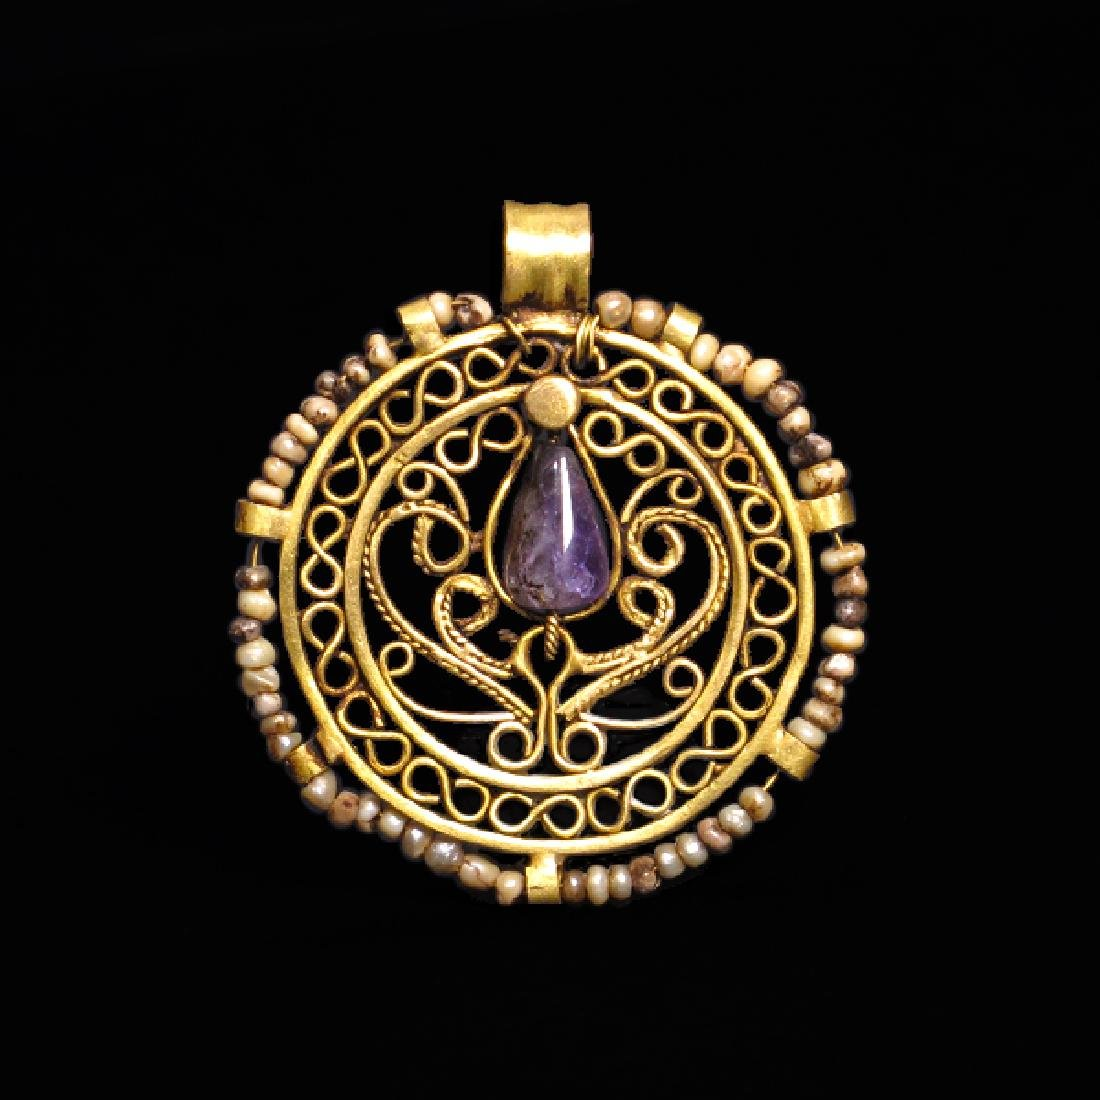 Byzantine Amethyst, Pearls and Gold Pendant, c. 8th -